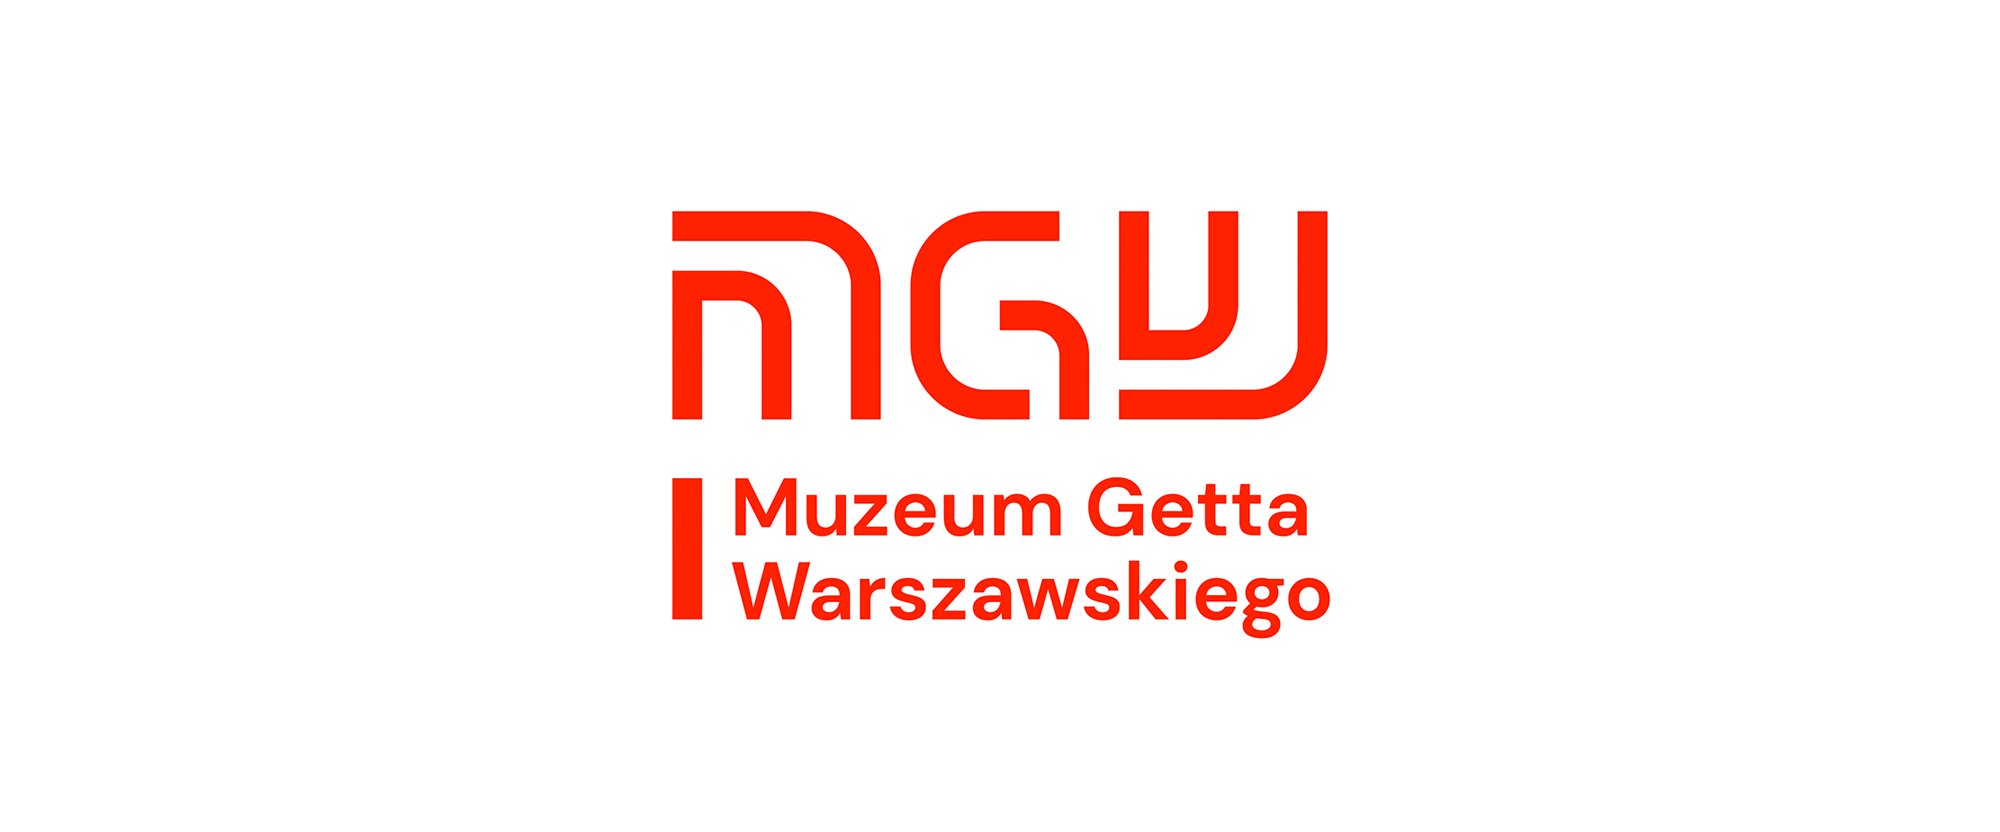 New Logo and Identity for Warsaw Ghetto Museum by DADADA studio